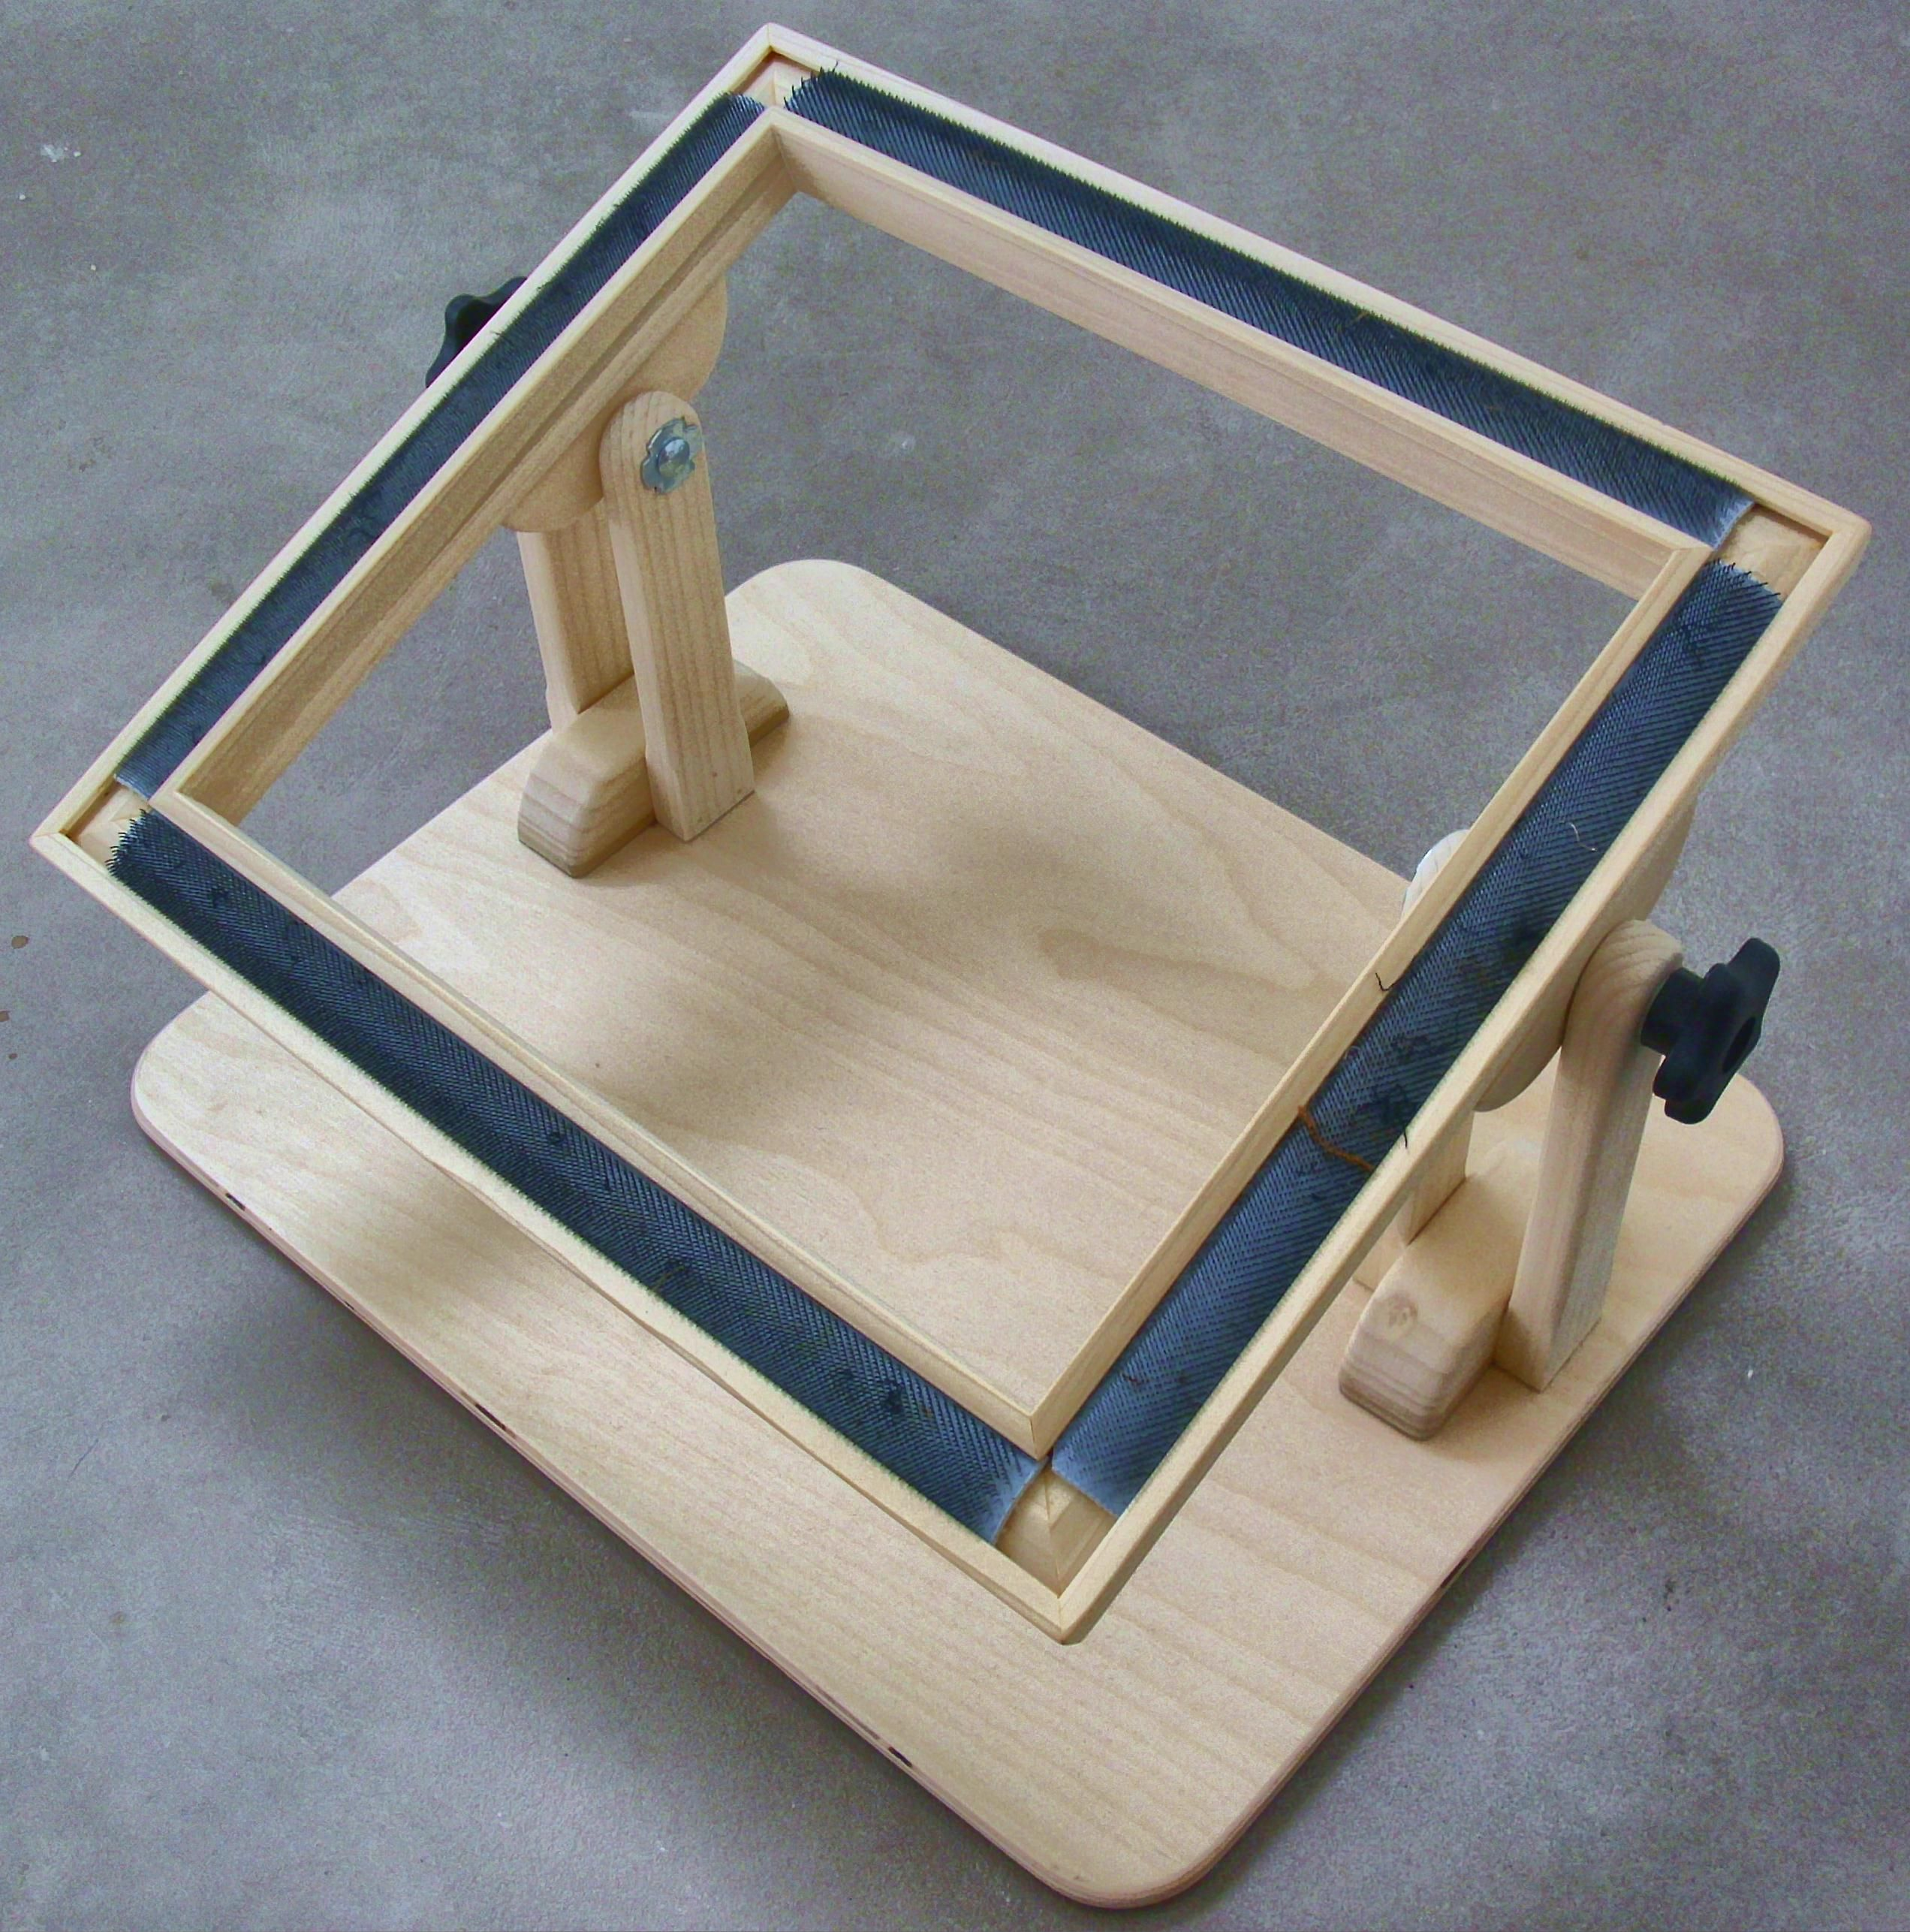 Here Is The Frame Again But This Time It Is Popped Off The Floor Stand You Can Easily Pop It Off The Stand Since Rug Hooking Frames Rug Hooking Rug Making